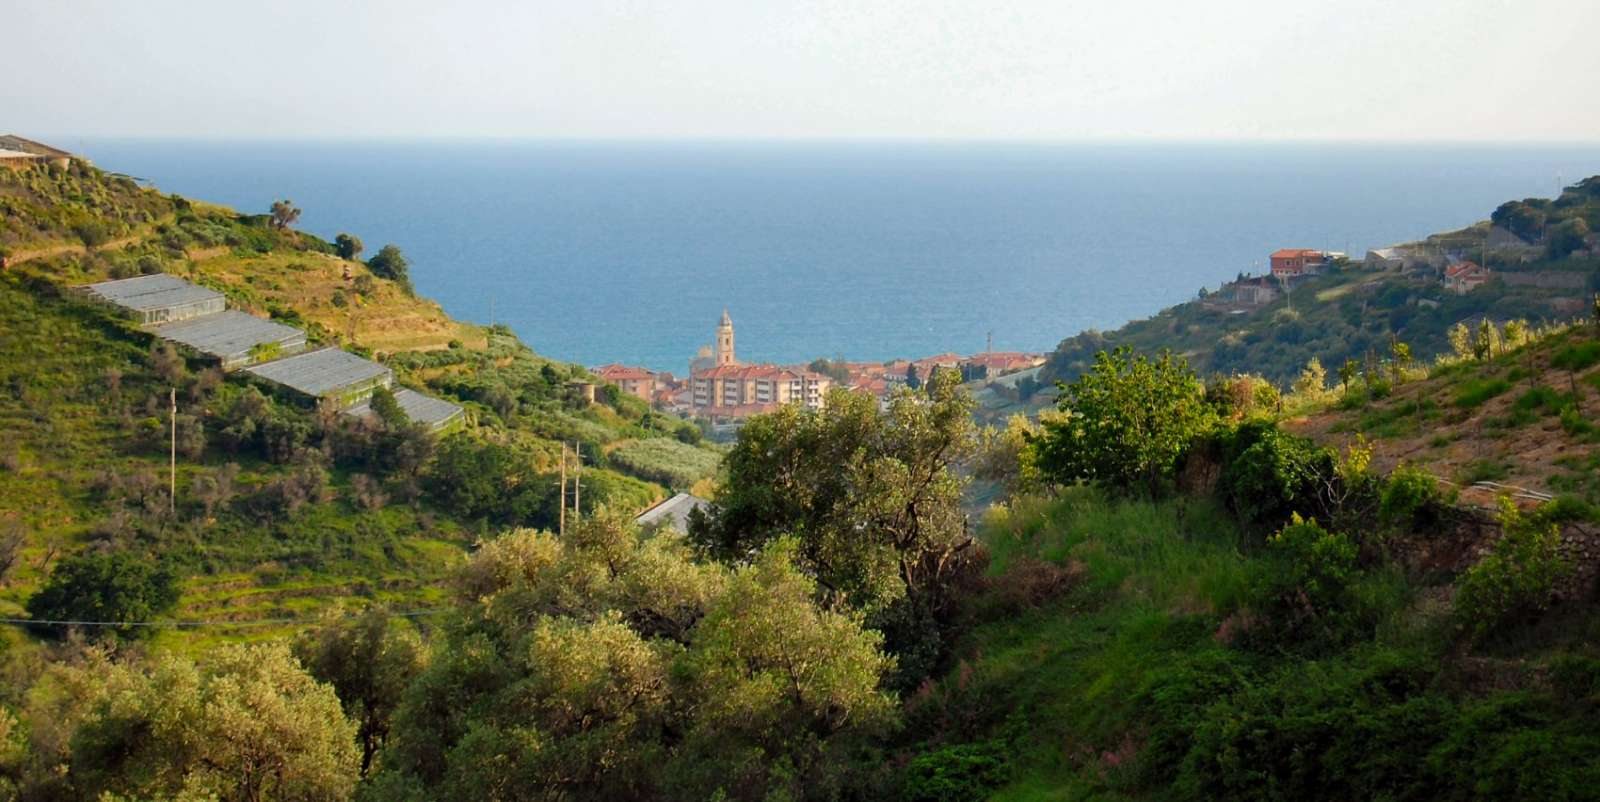 View down to the sea and Riva Ligure